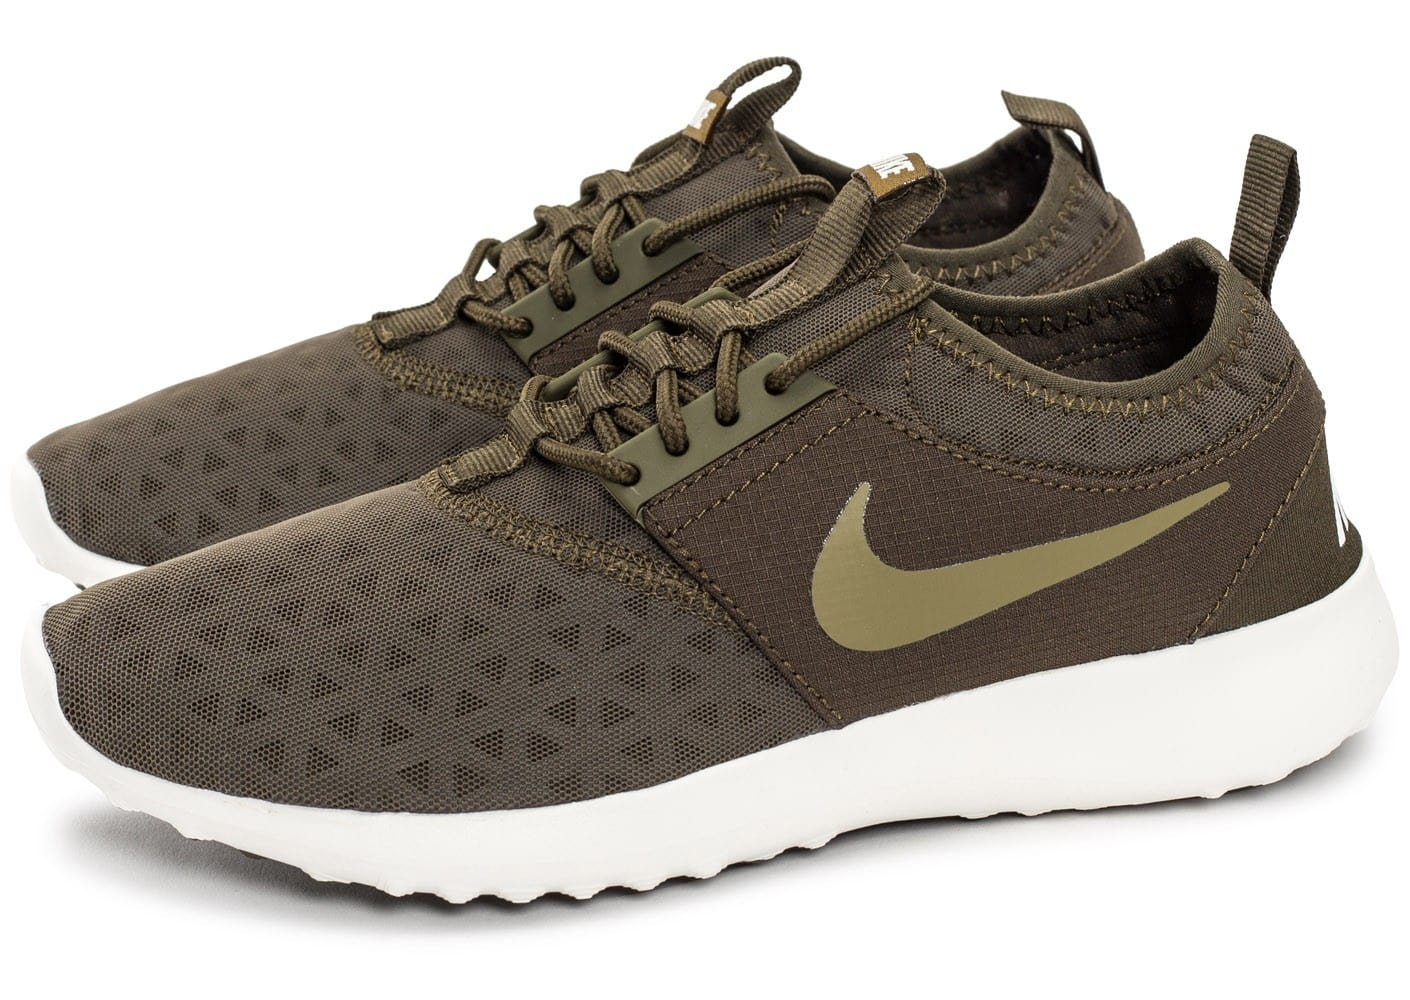 Olive Juvenate Nike Chausport Nike Chaussures Juvenate 3A4RL5jq